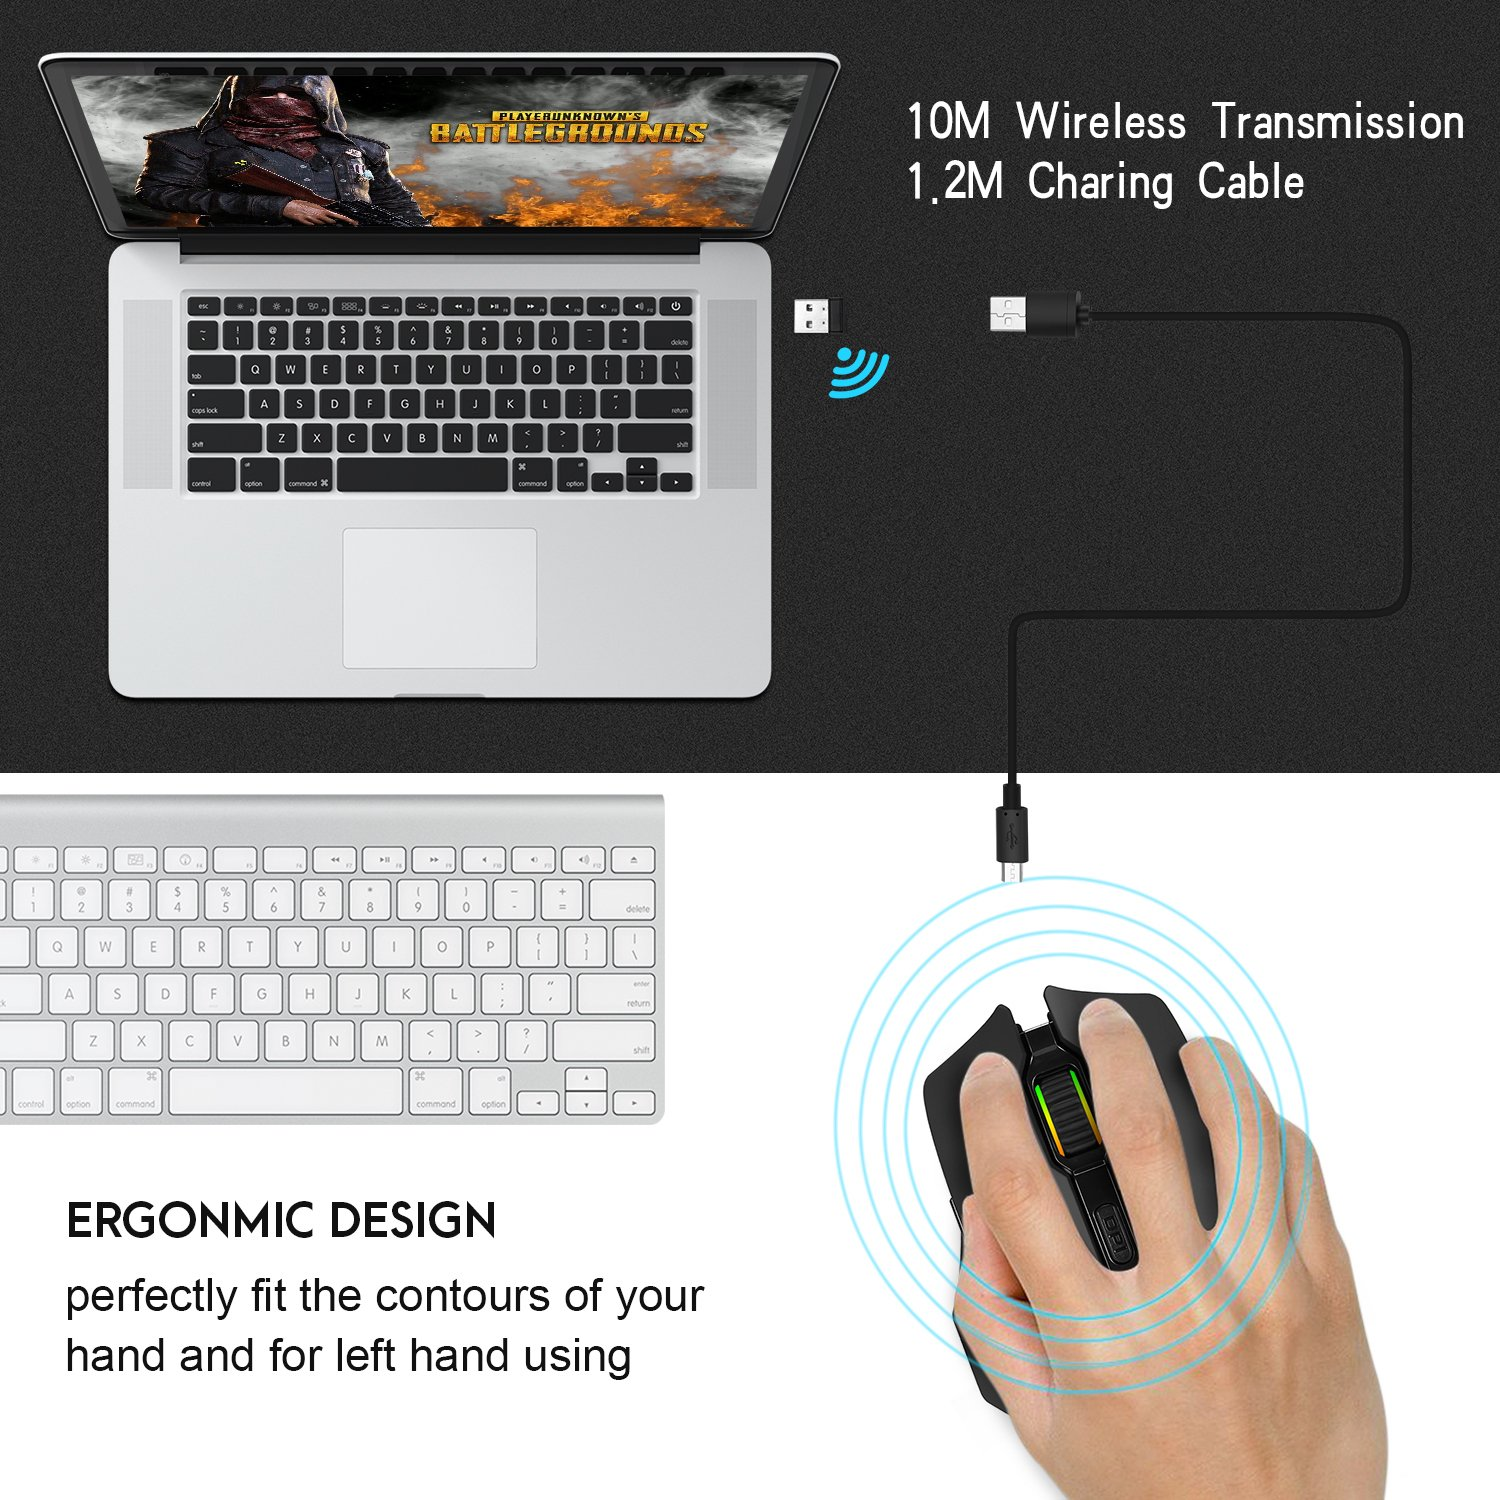 JinSun Rechargeable Laptop Wireless Gaming Mouse 2 in 1 Wireless & Wired Optical Mice with USB, 5 Buttons, 6 Colors Breathing Lights for PC and Mac, 6 Adjustable DPI Levels for Laptop Mac Pro and PC by JinSun (Image #5)